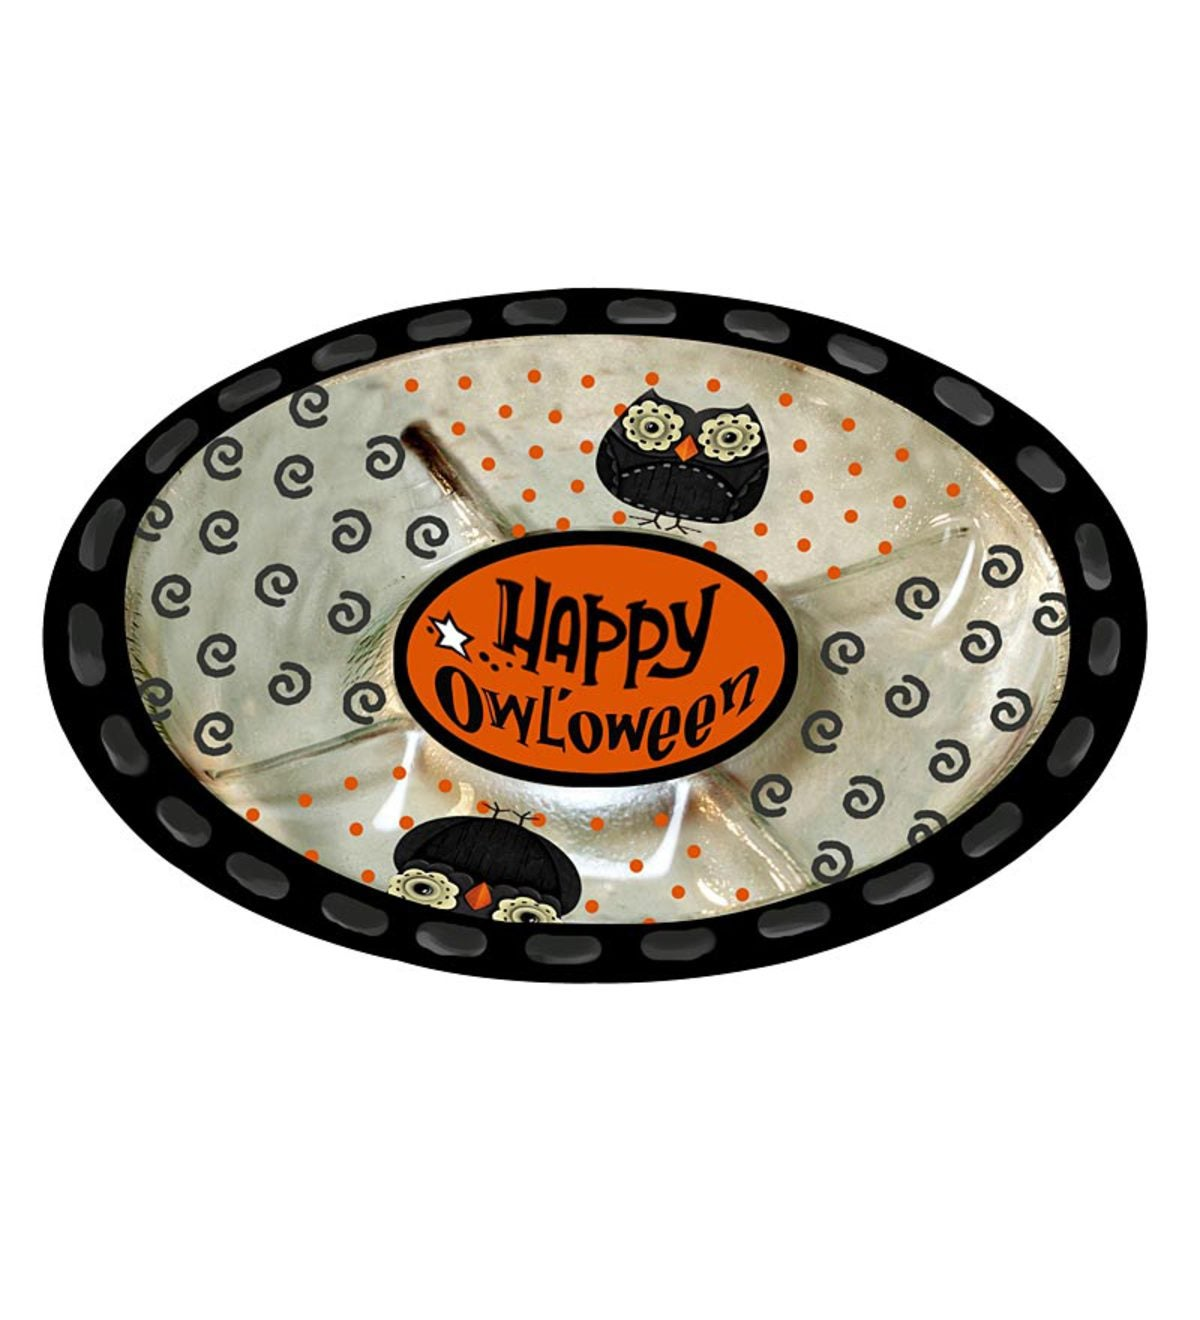 Happy Owl'oween Hand-Painted Glass 5-Section Serving Dish